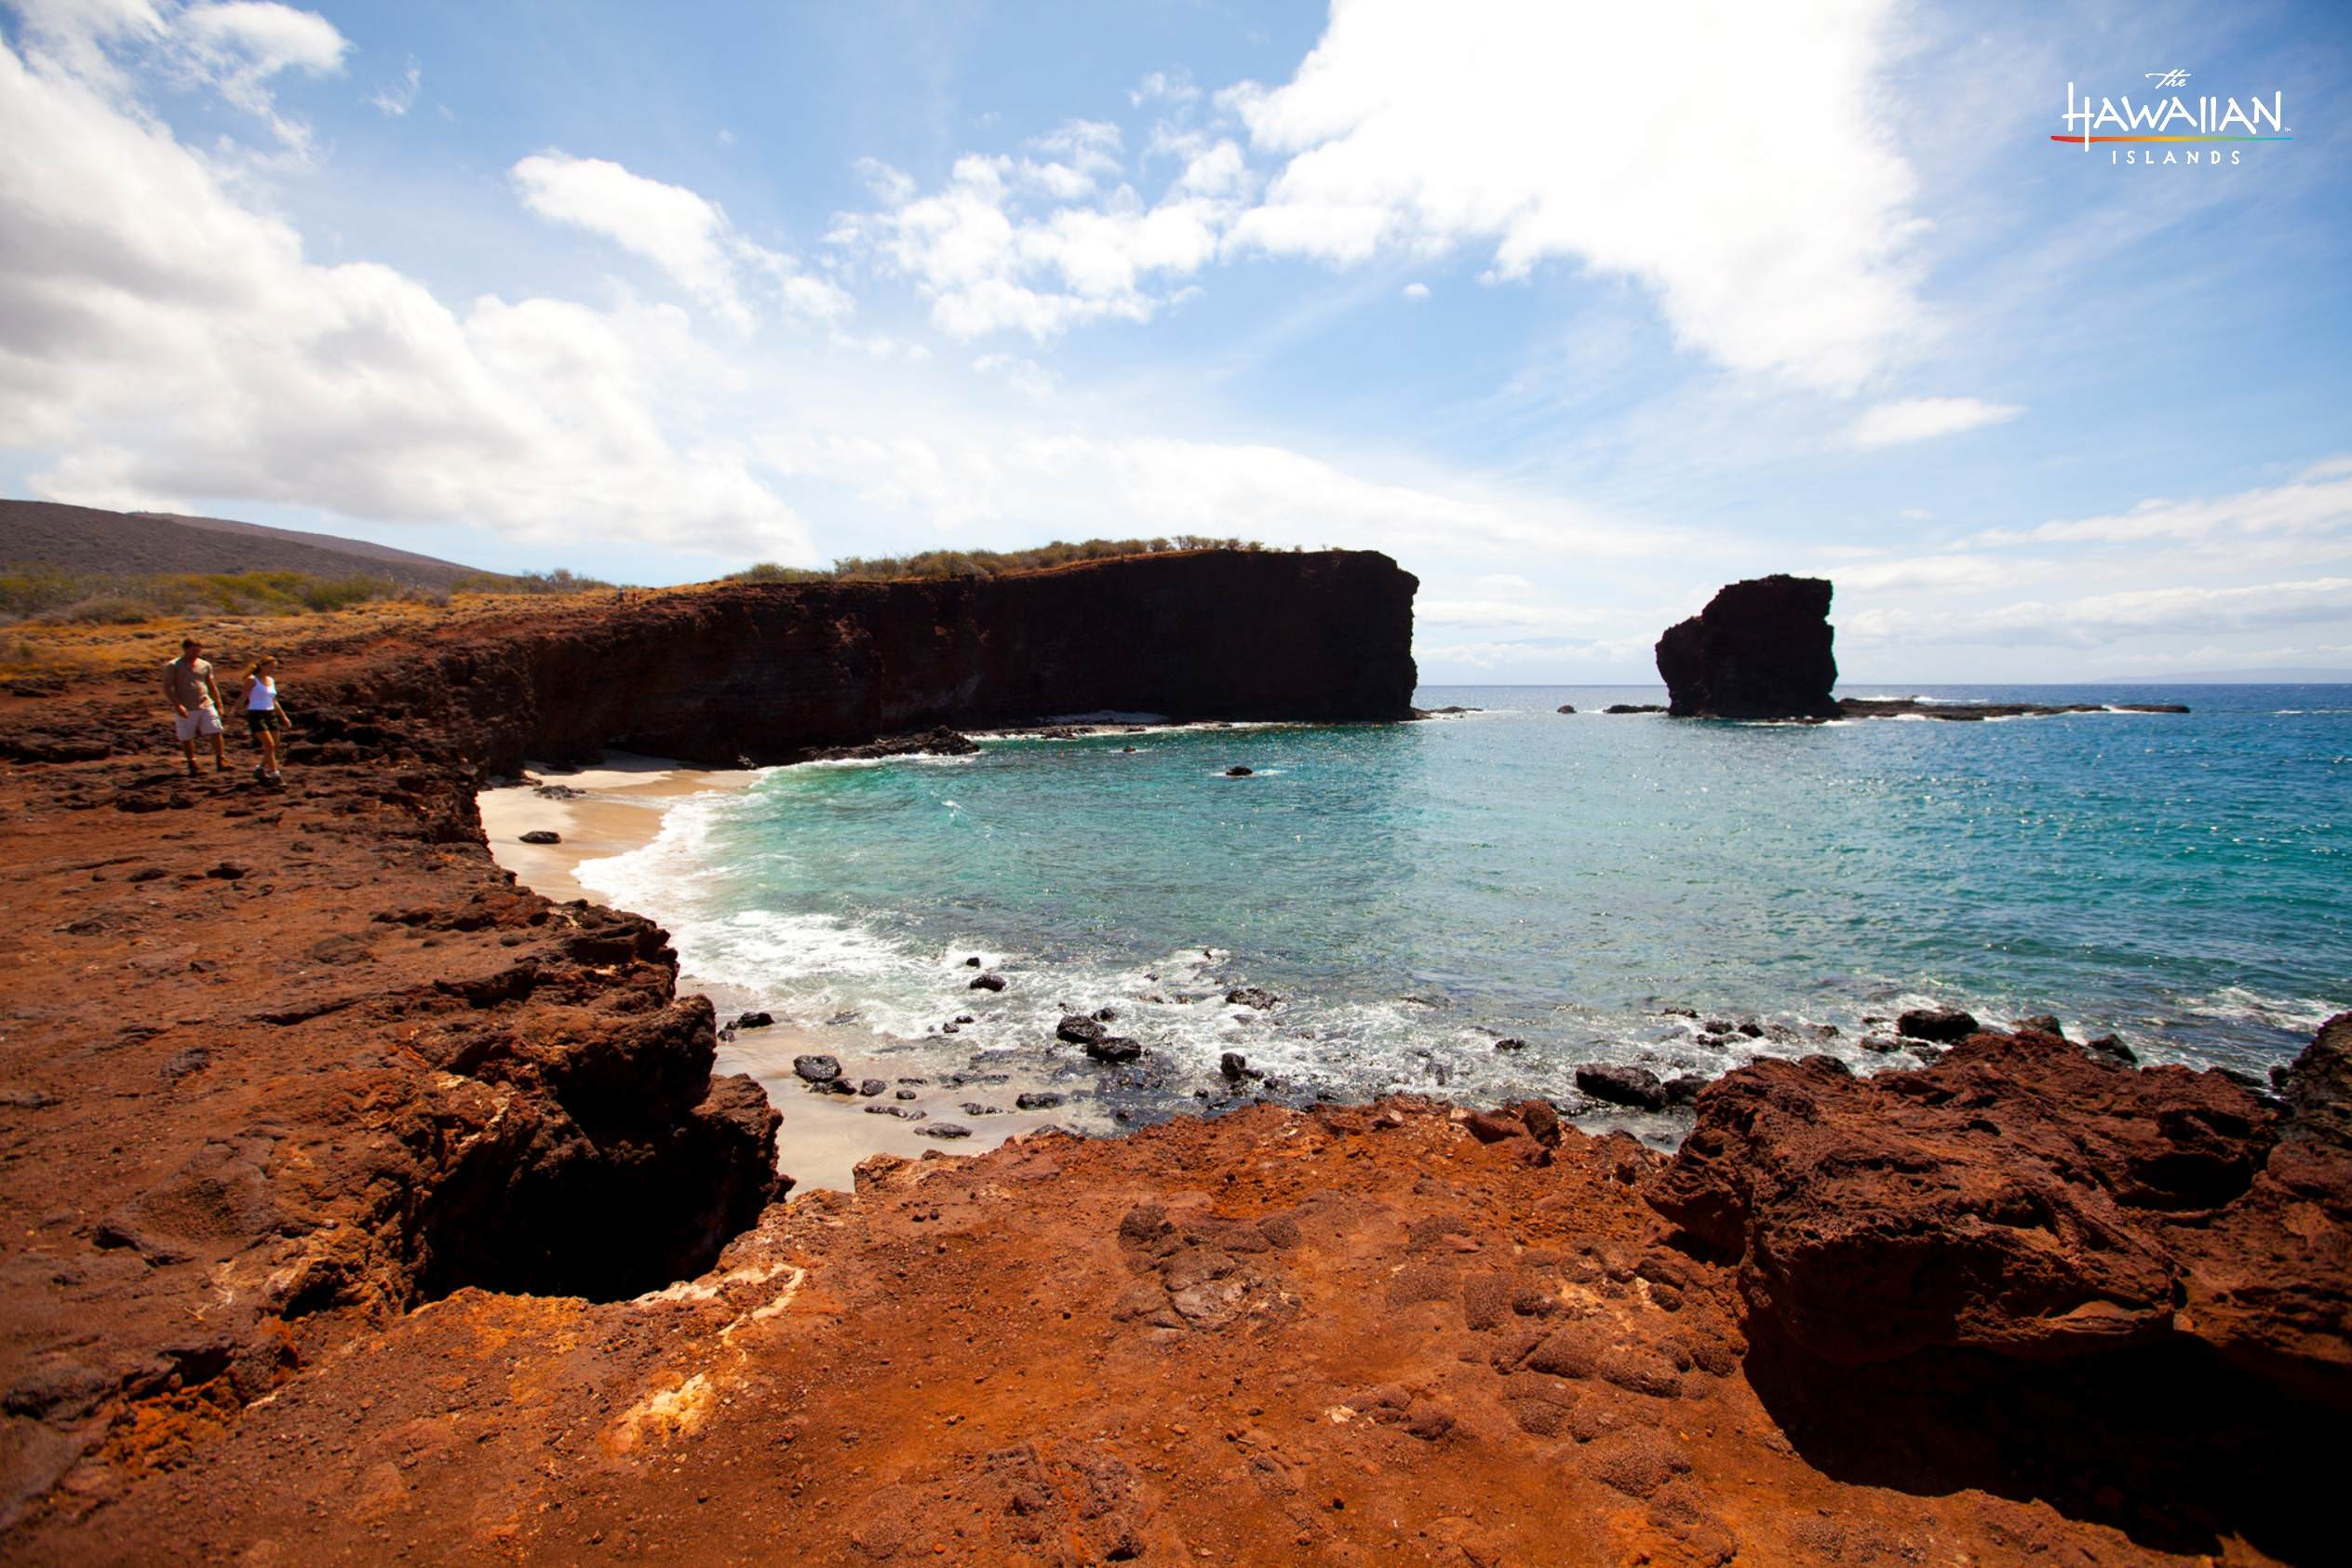 Image from Hawaii Tourism Authority (HTA)